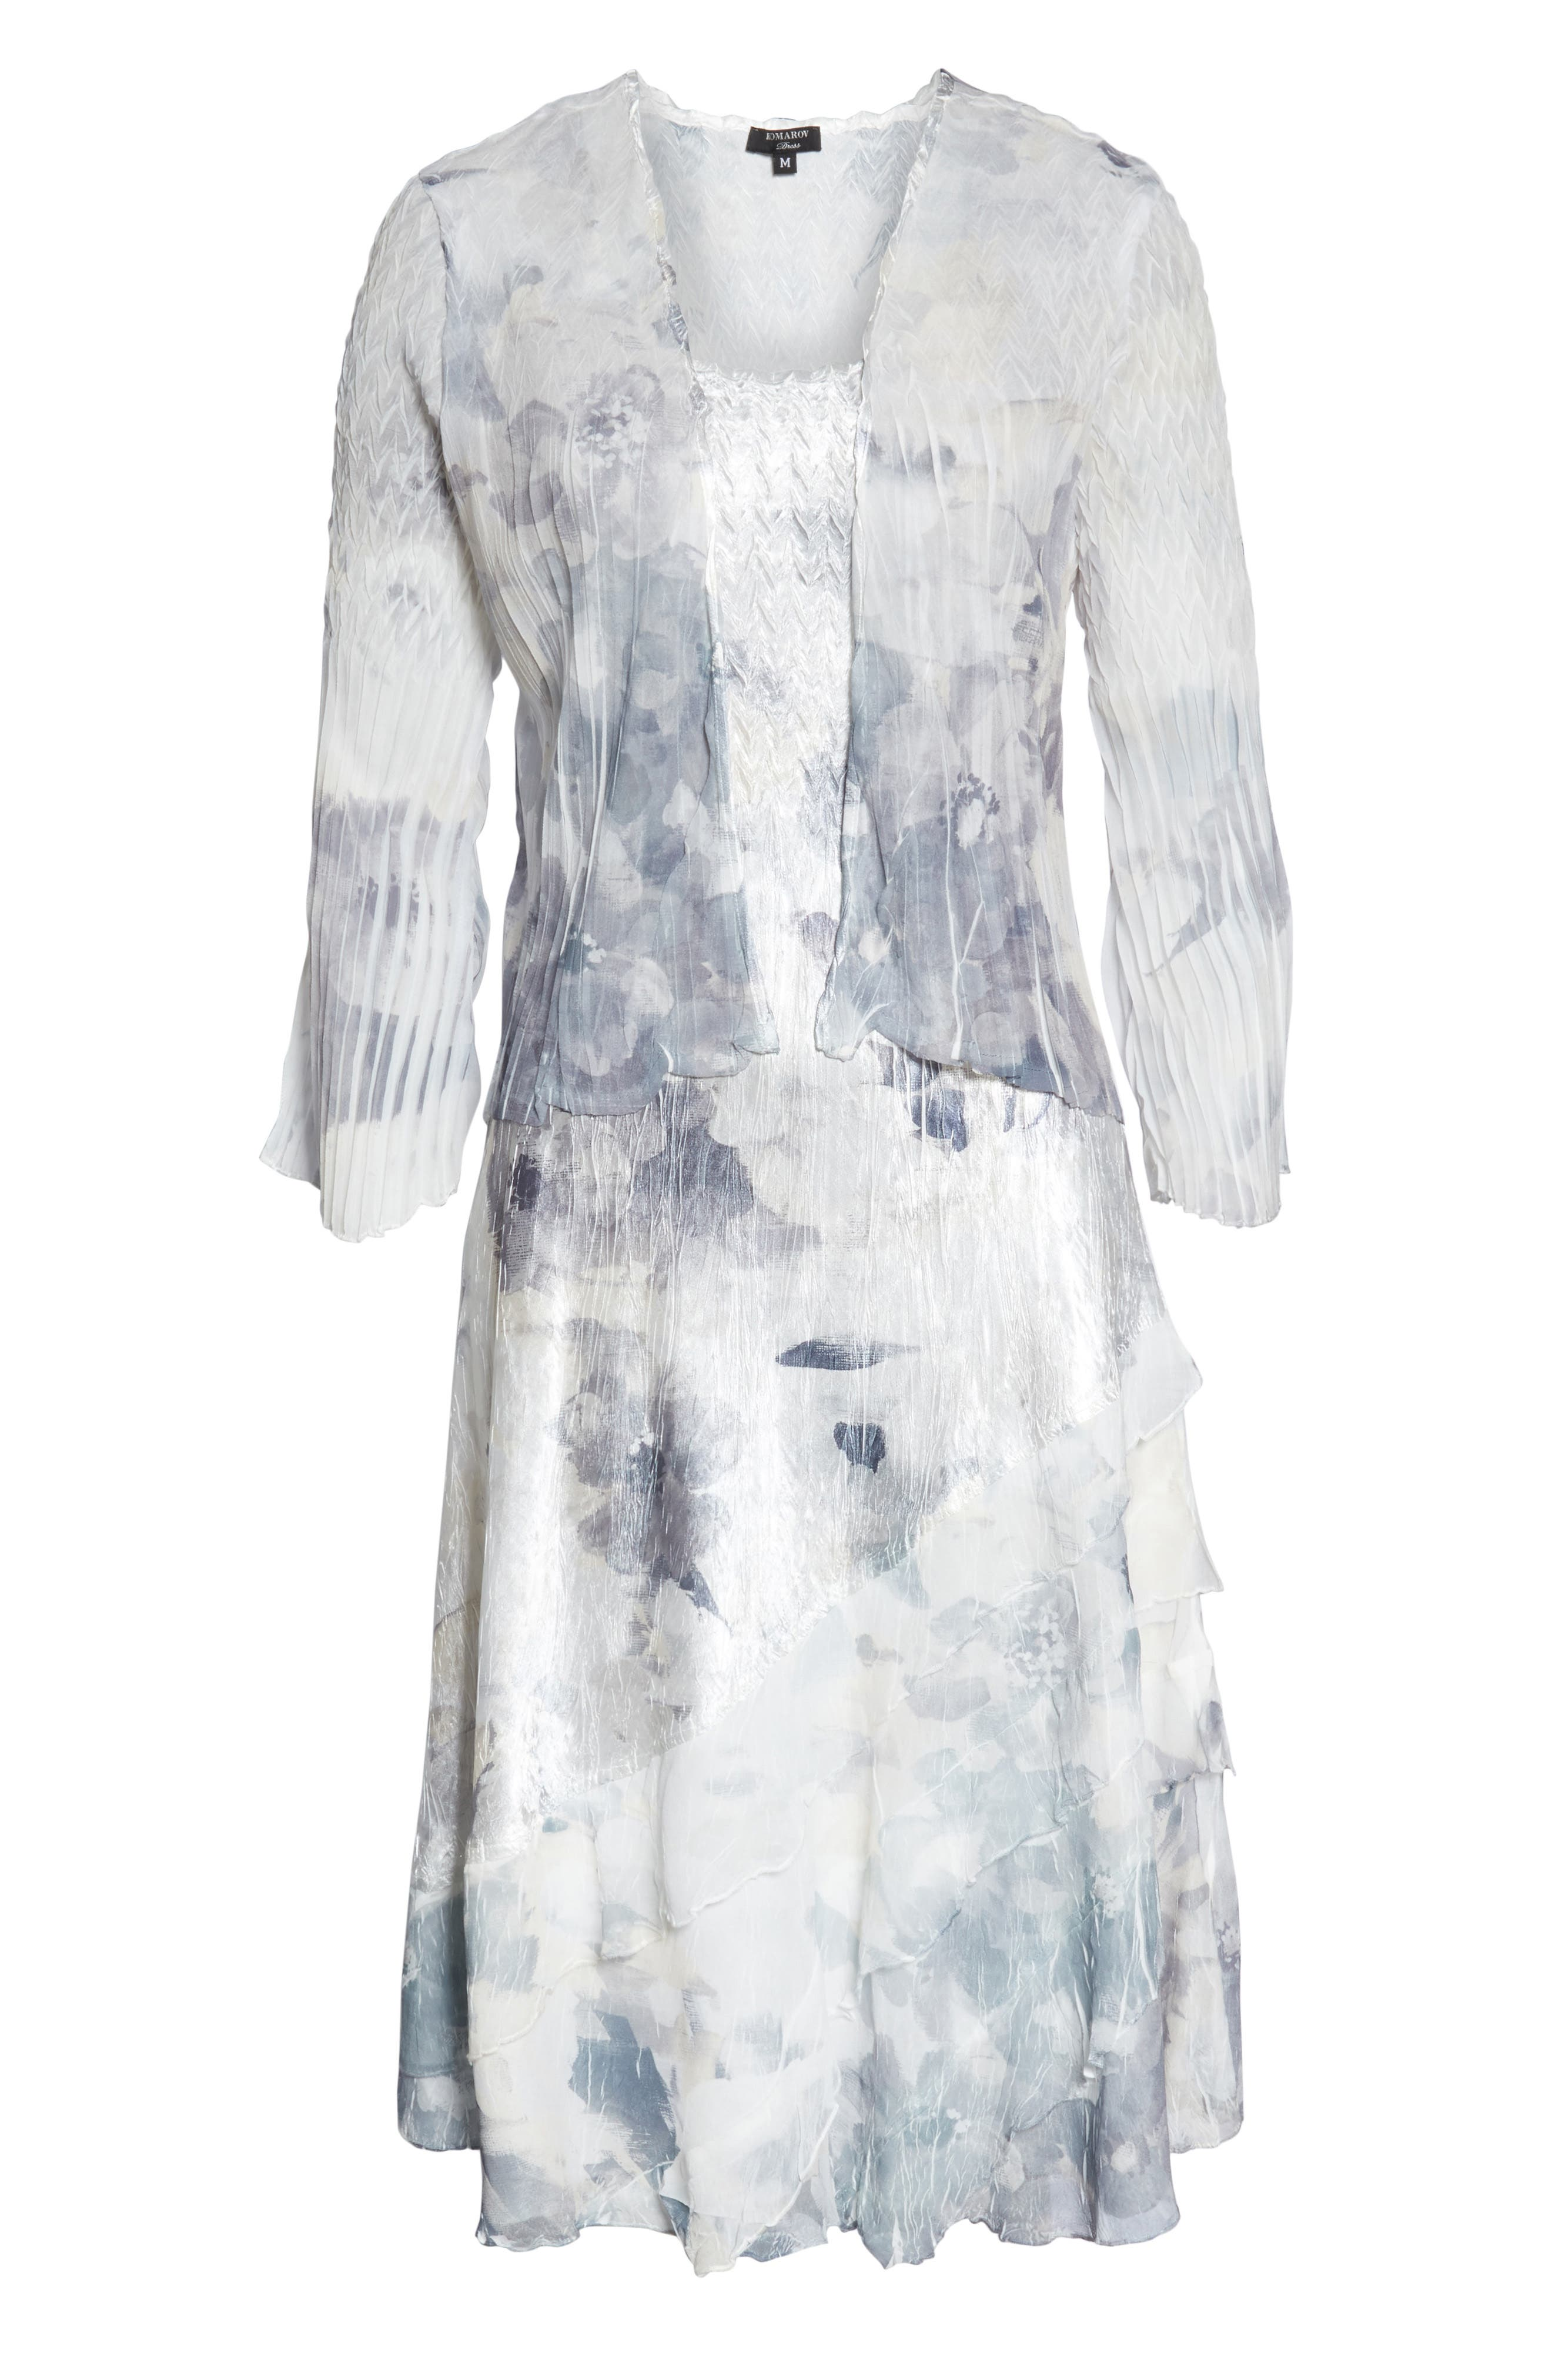 KOMAROV, Floral Charmeuse & Chiffon Dress with Jacket, Alternate thumbnail 6, color, FROSTED PETAL